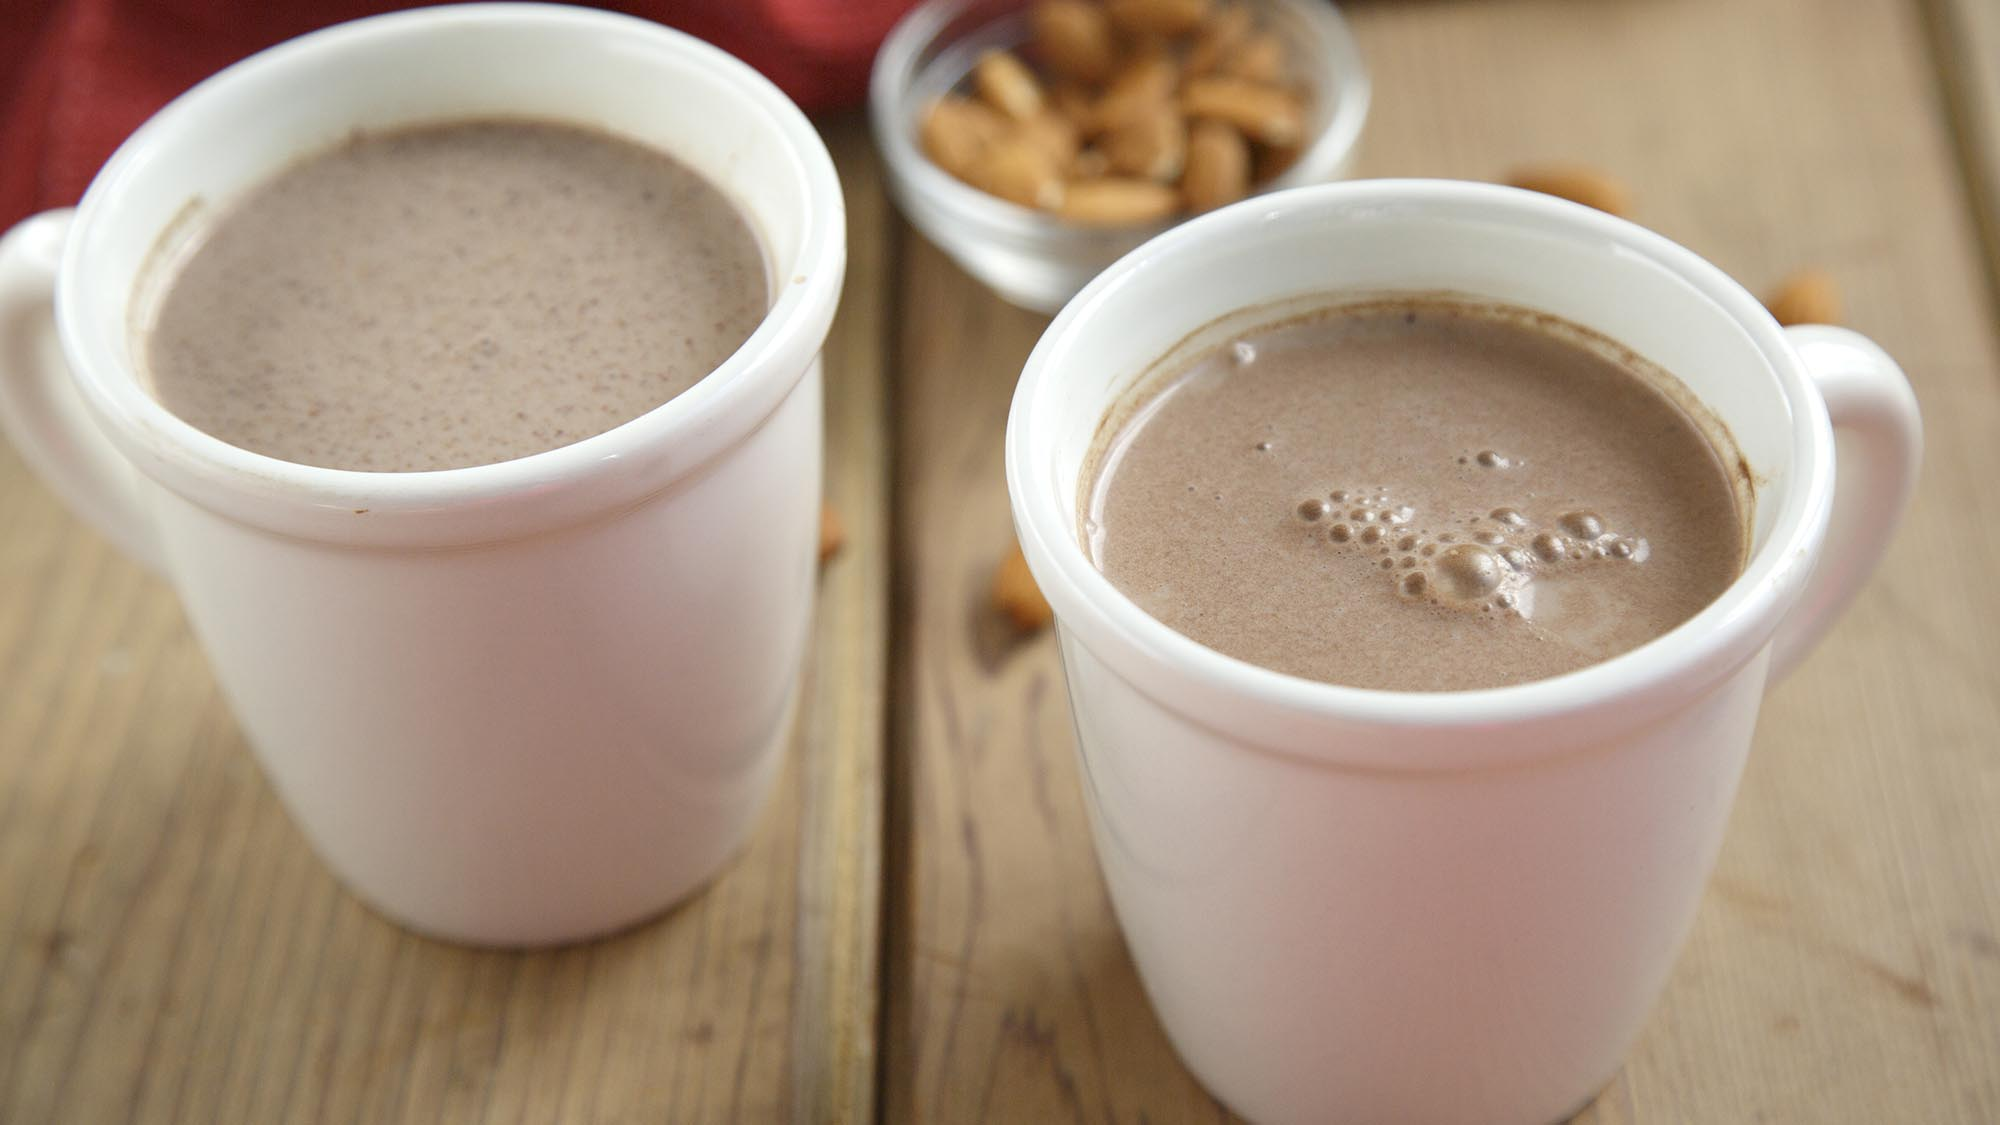 almond_hot_chocolate_2000x1125.jpg